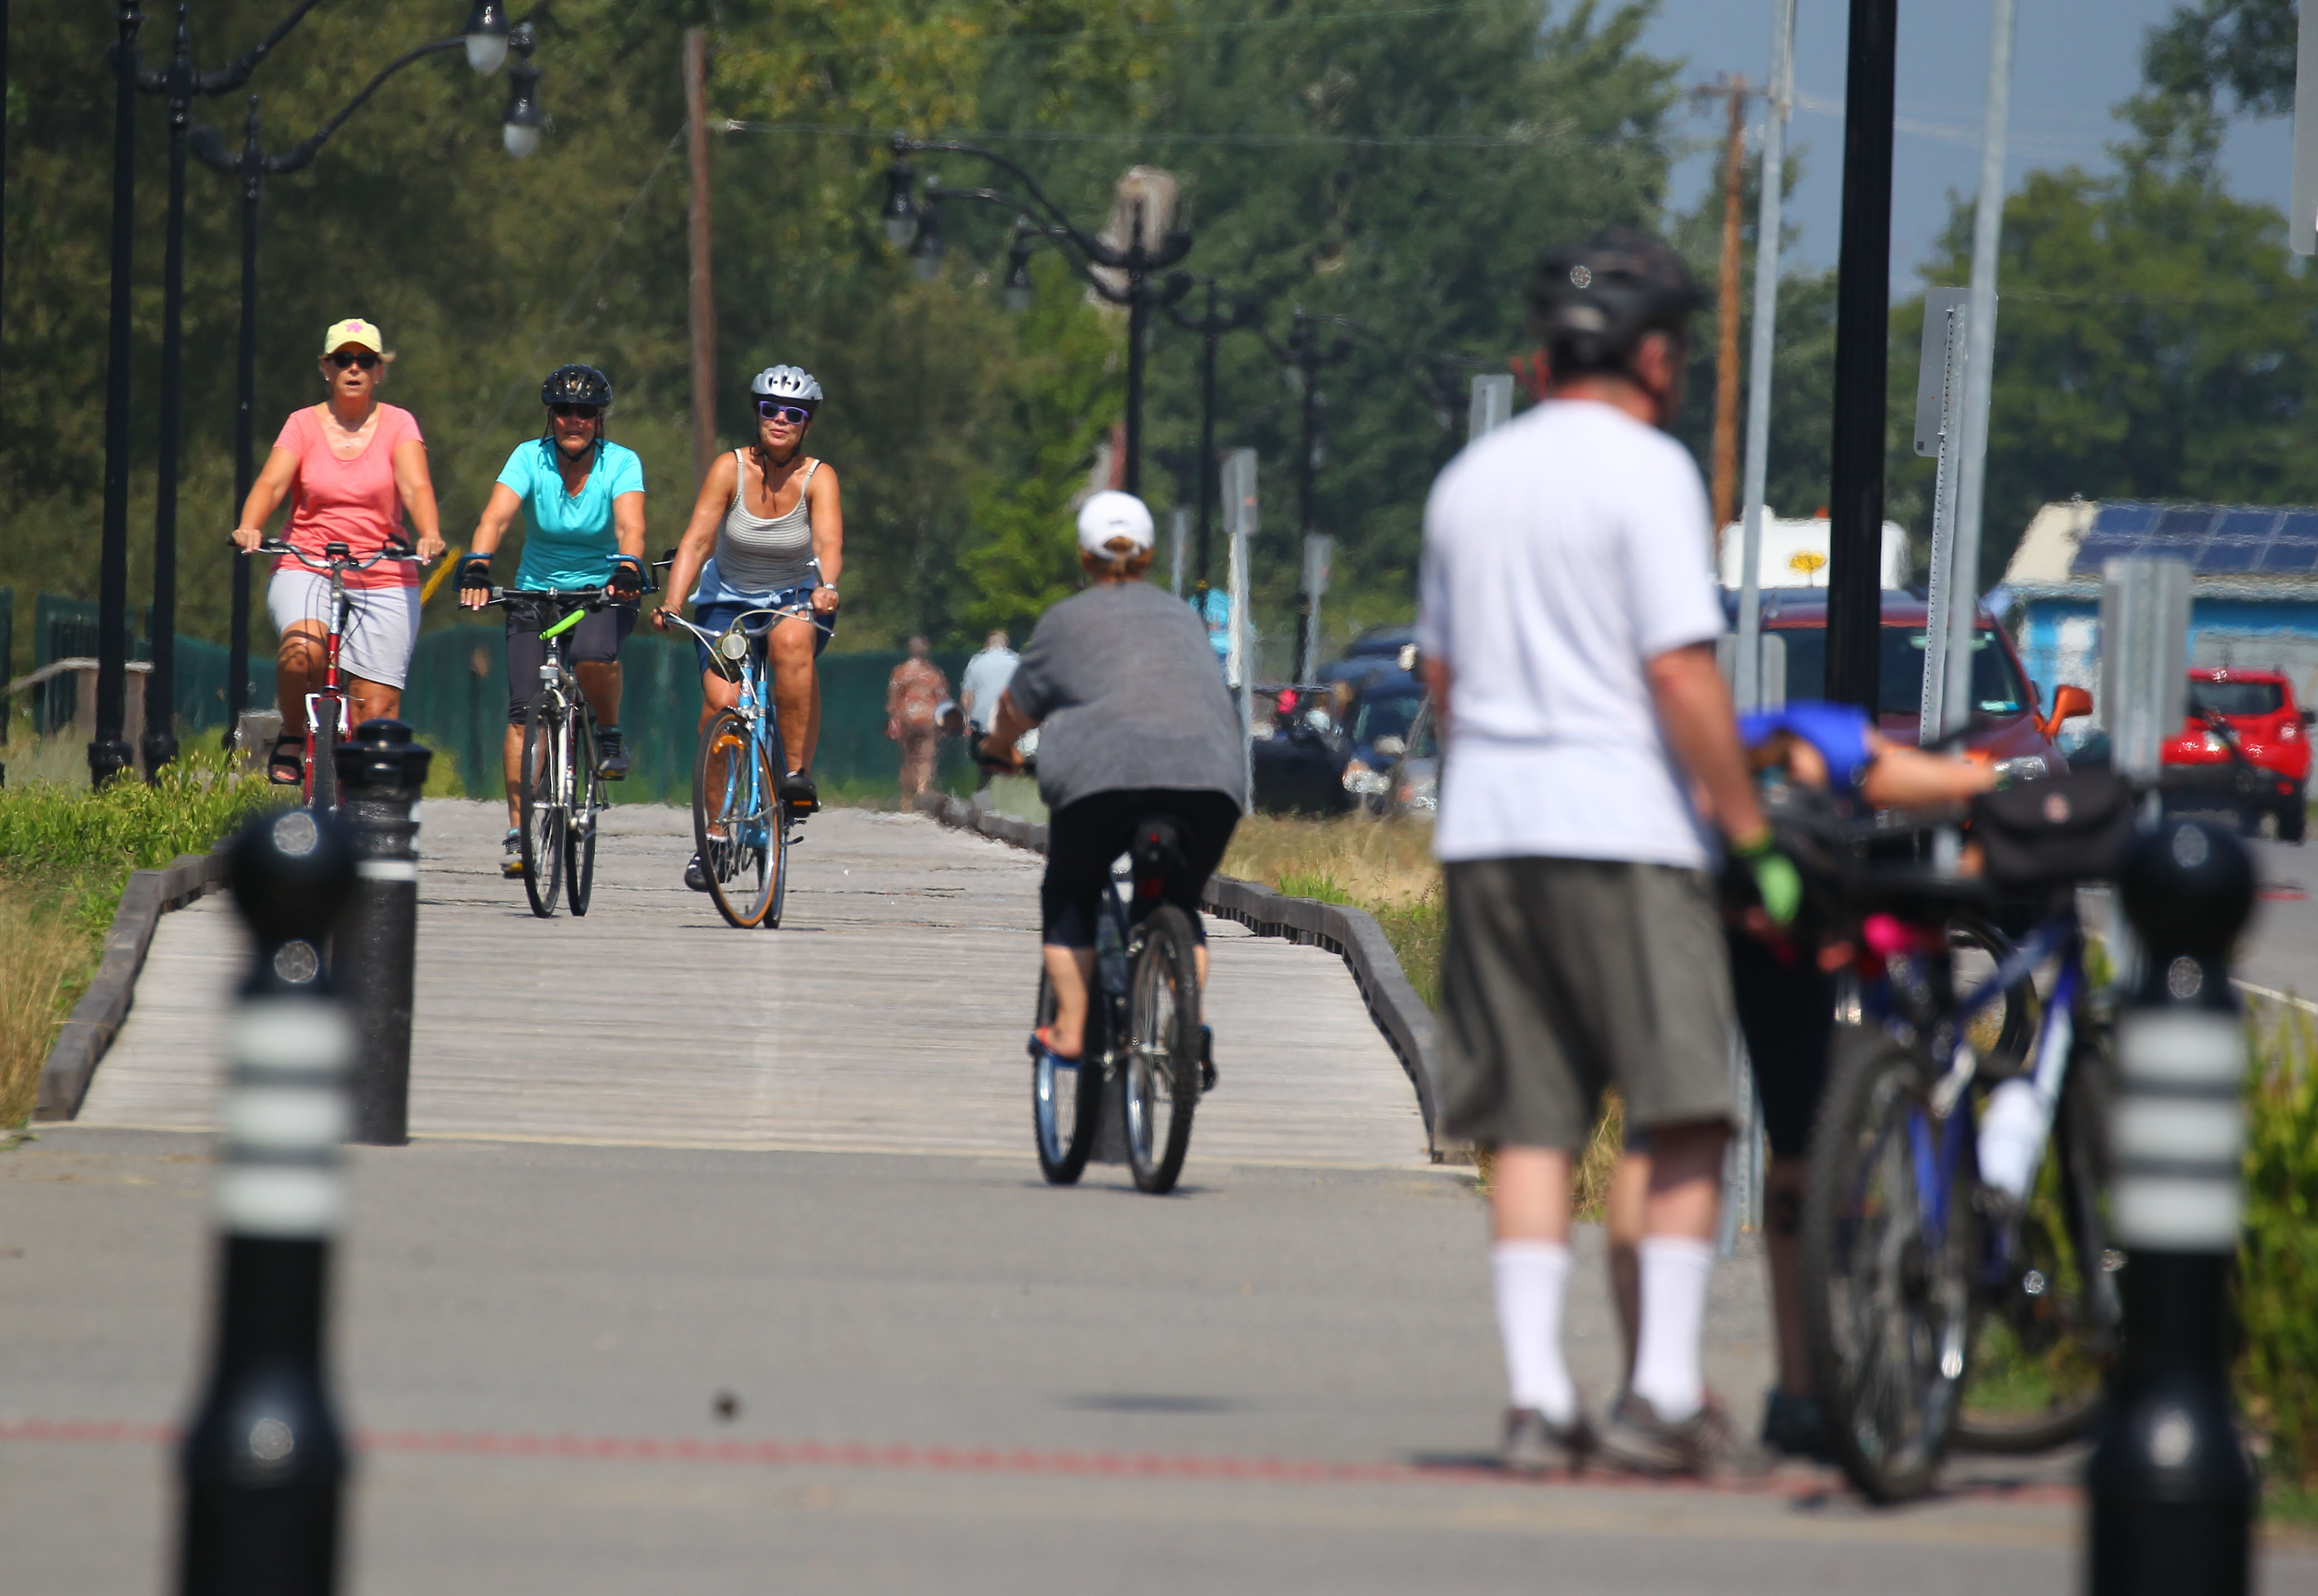 Bikers take to the paths on Furhman Blvd near Wilkeson Point. (Mark Mulville/Buffalo News)